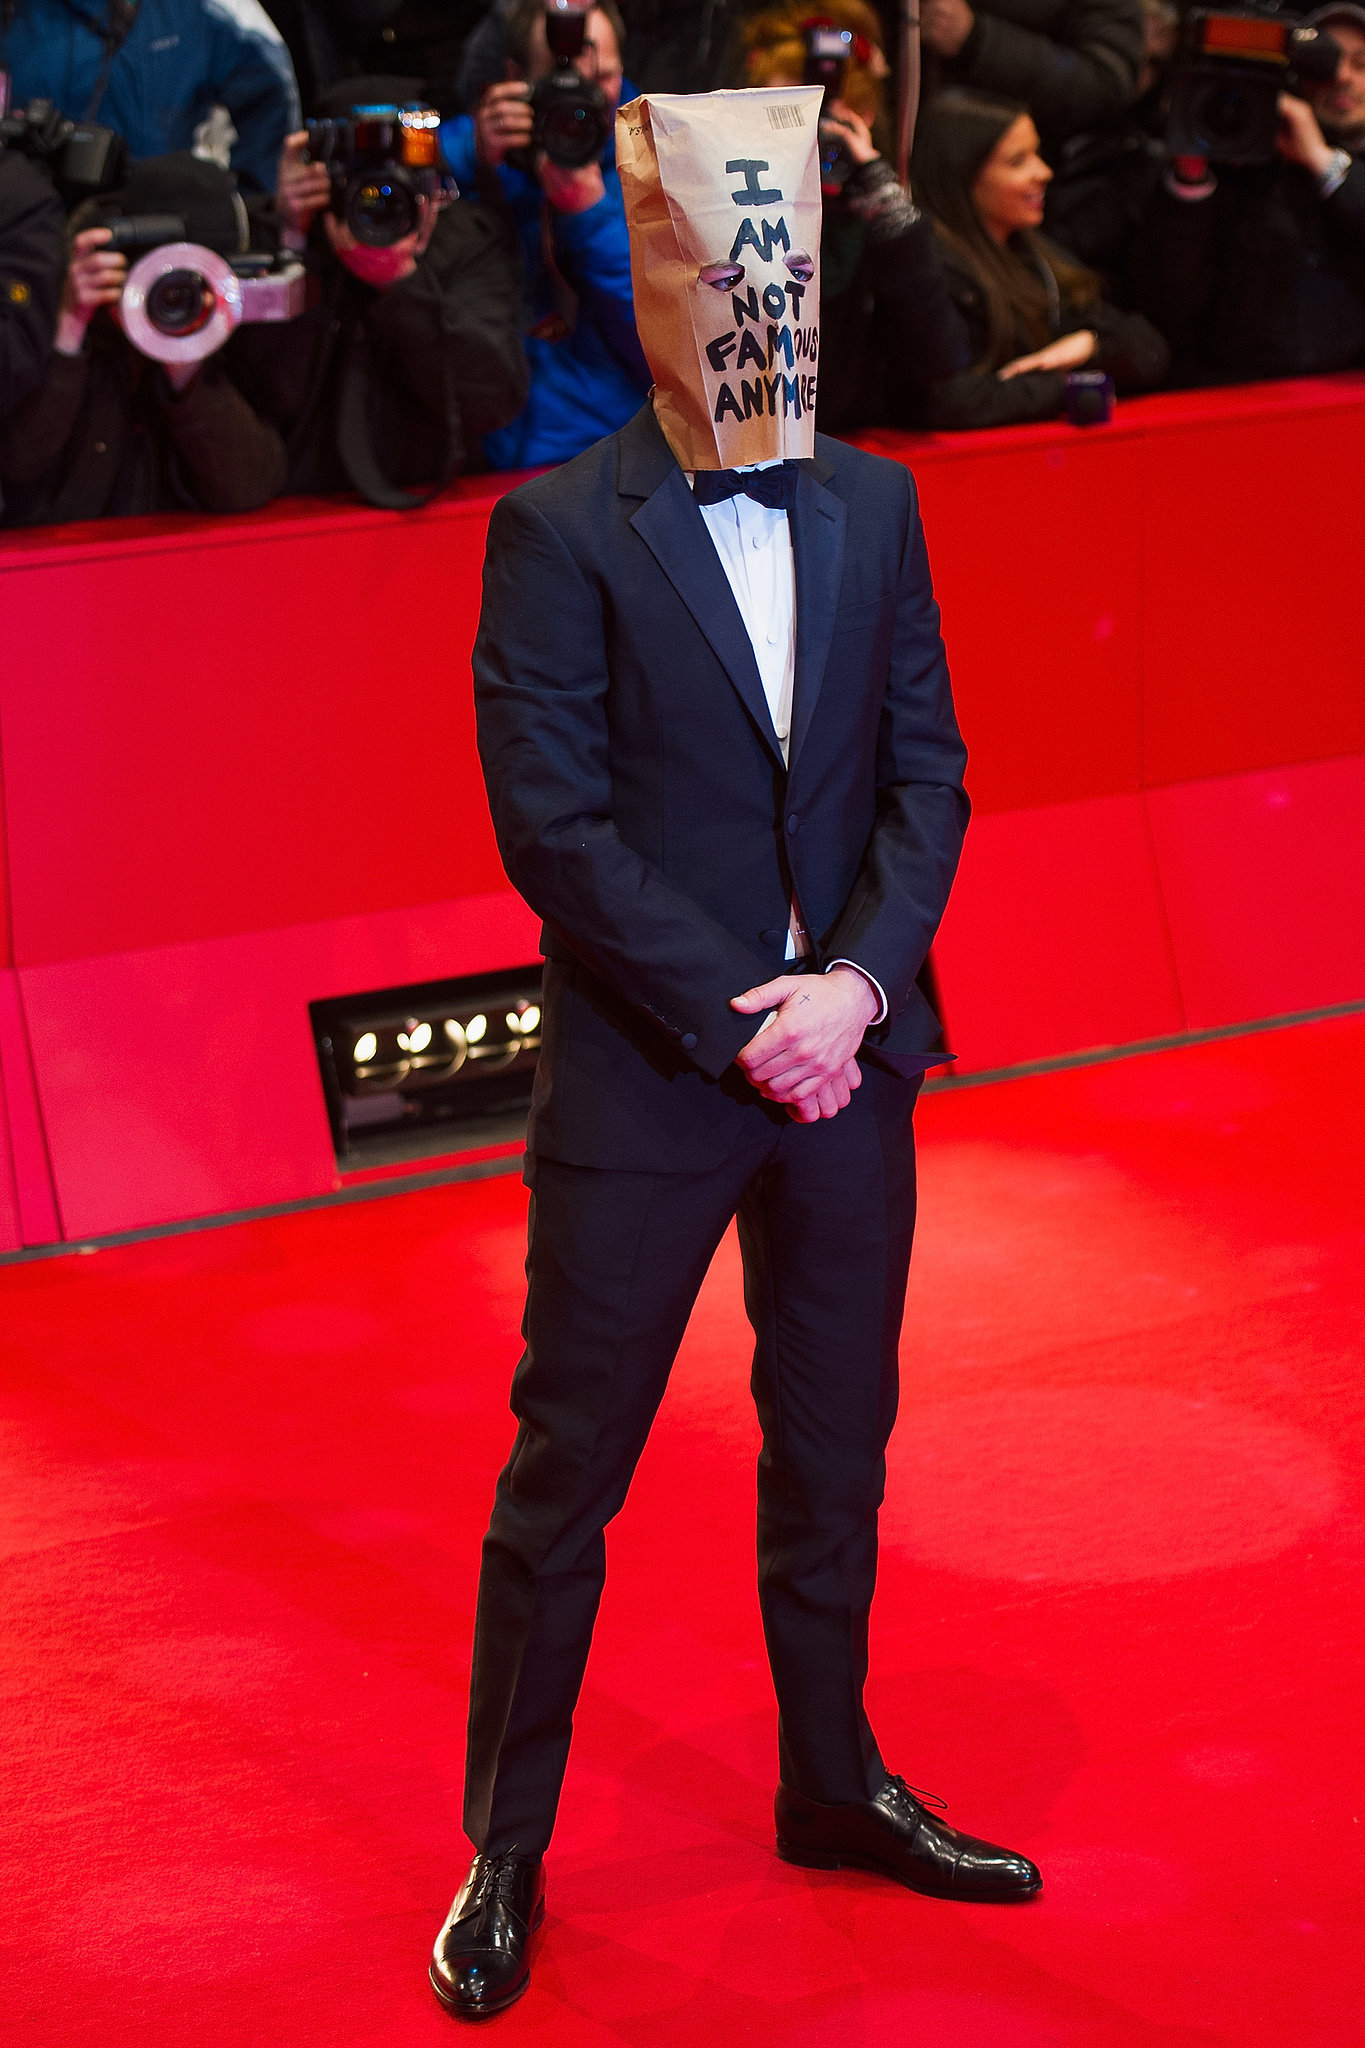 """Shia LaBeouf wore a paper bag that said """"I am not famous anymore"""" at his Nymphomaniac premiere in Berlin, and his month only got crazier after that."""